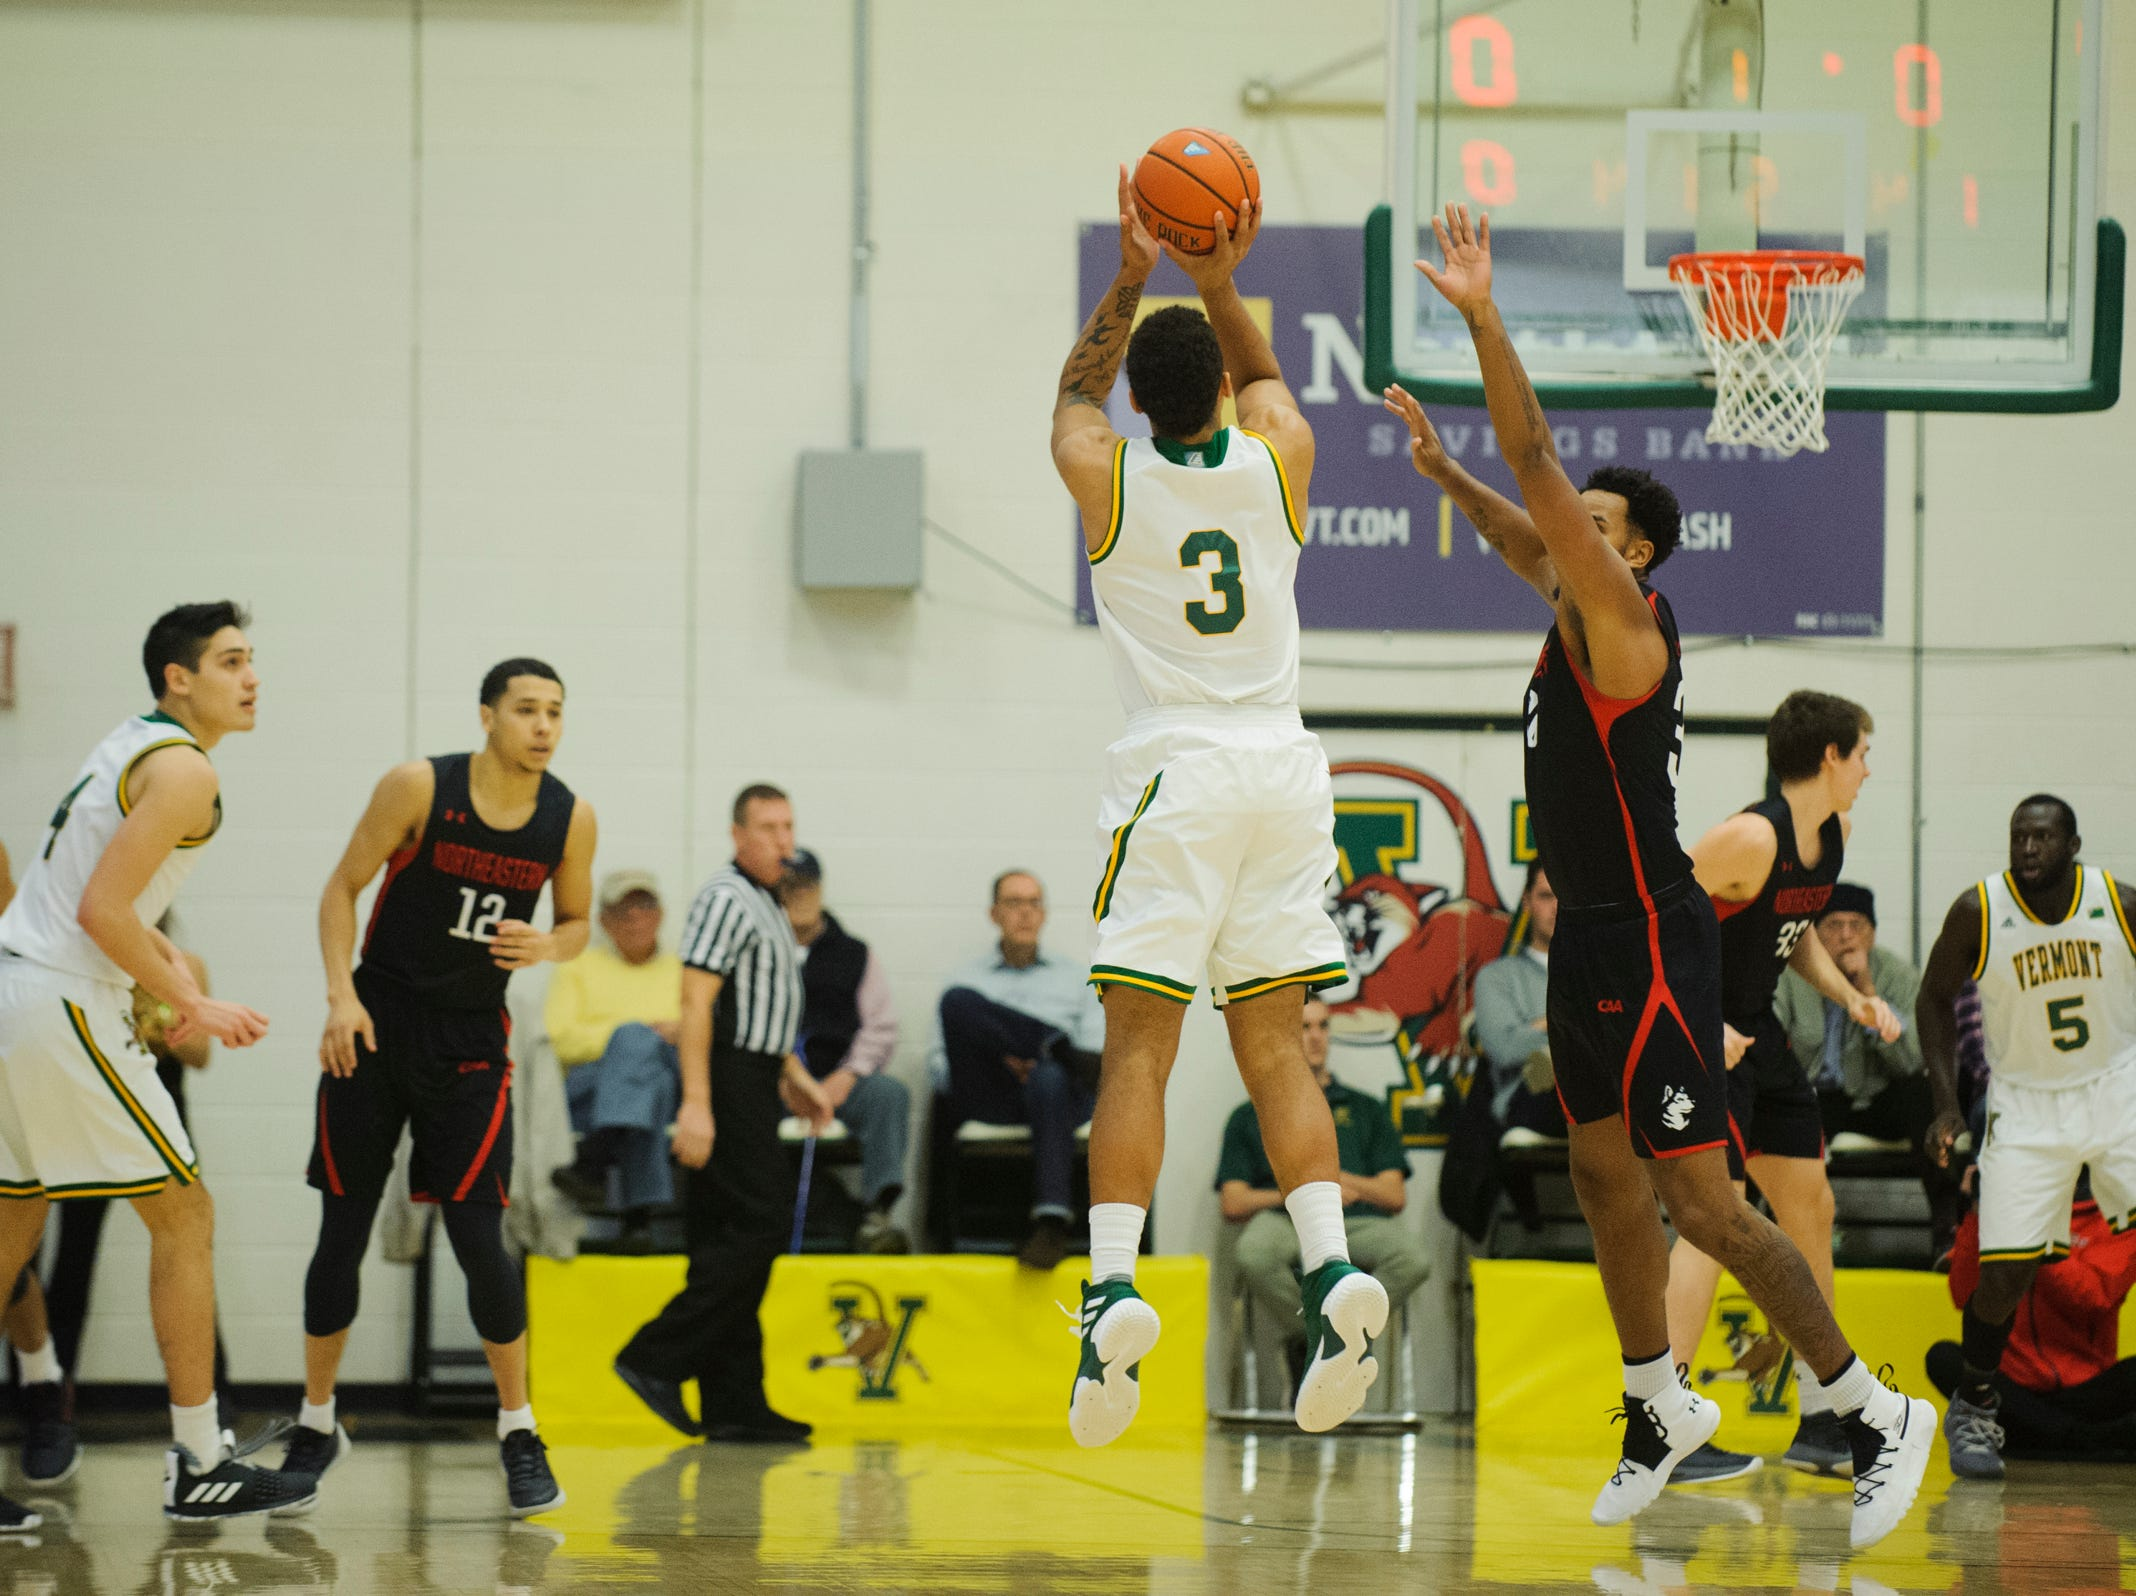 Vermont forward Anthony Lamb (3) shoots a three pointer during the men's basketball game between the Northeastern Huskies and the Vermont Catamounts at Patrick Gym on Sunday afternoon December 16, 2018 in Burlington.